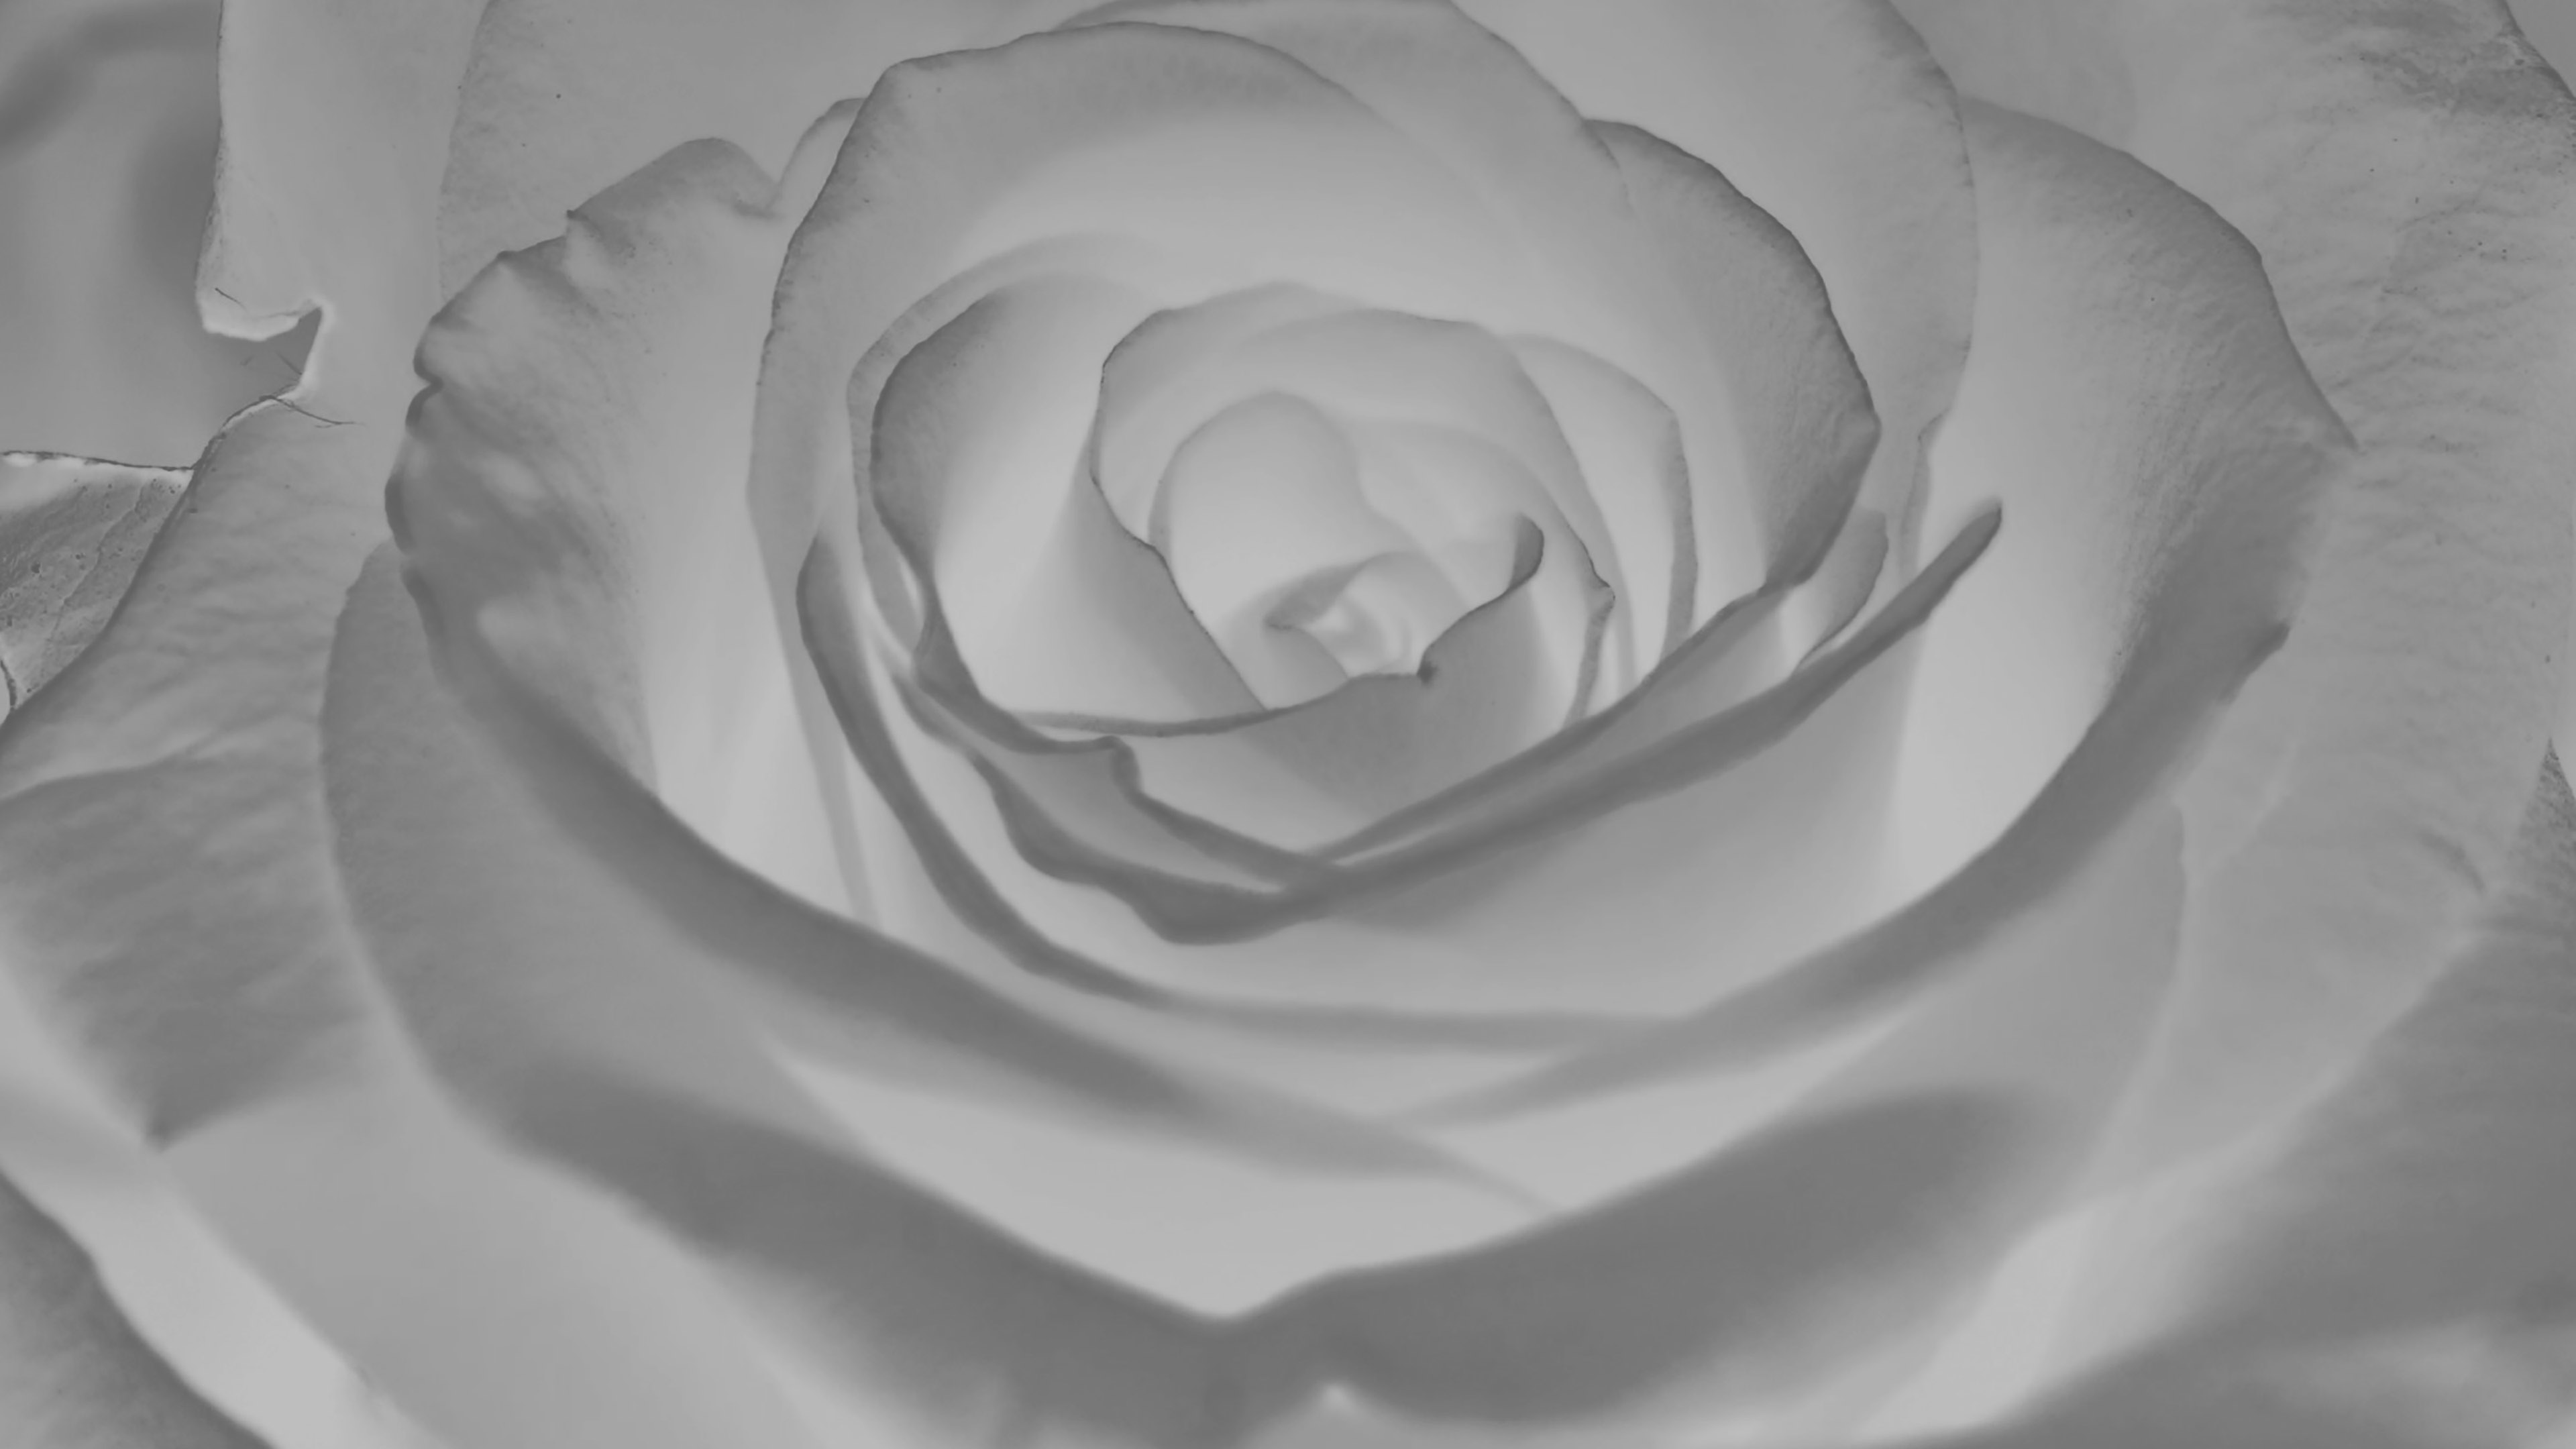 white rose essay tulsa White rose society essay 2017  the purpose of this essay contest is to record the stories that must be told to yesterday's, today's and tomorrow's children part a: research the history of a specific child or youth who was caught in or witnessed the events of the holocaust in europe this person could have lived in a ghetto, been.